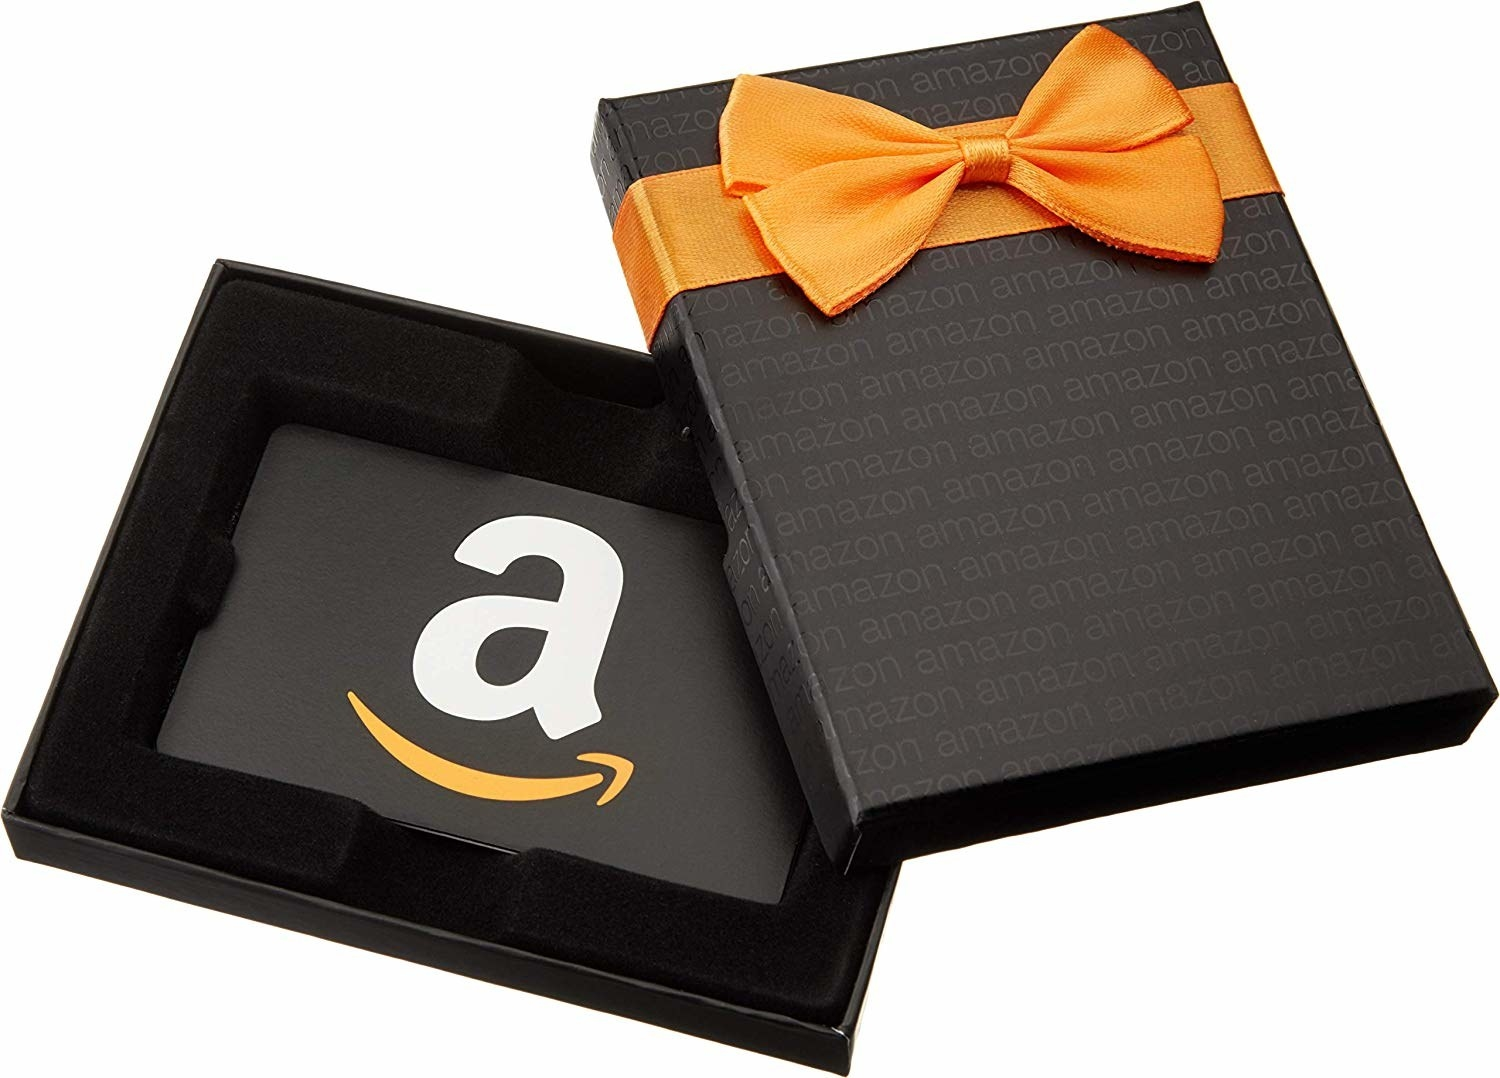 A gift card in a box with a bow